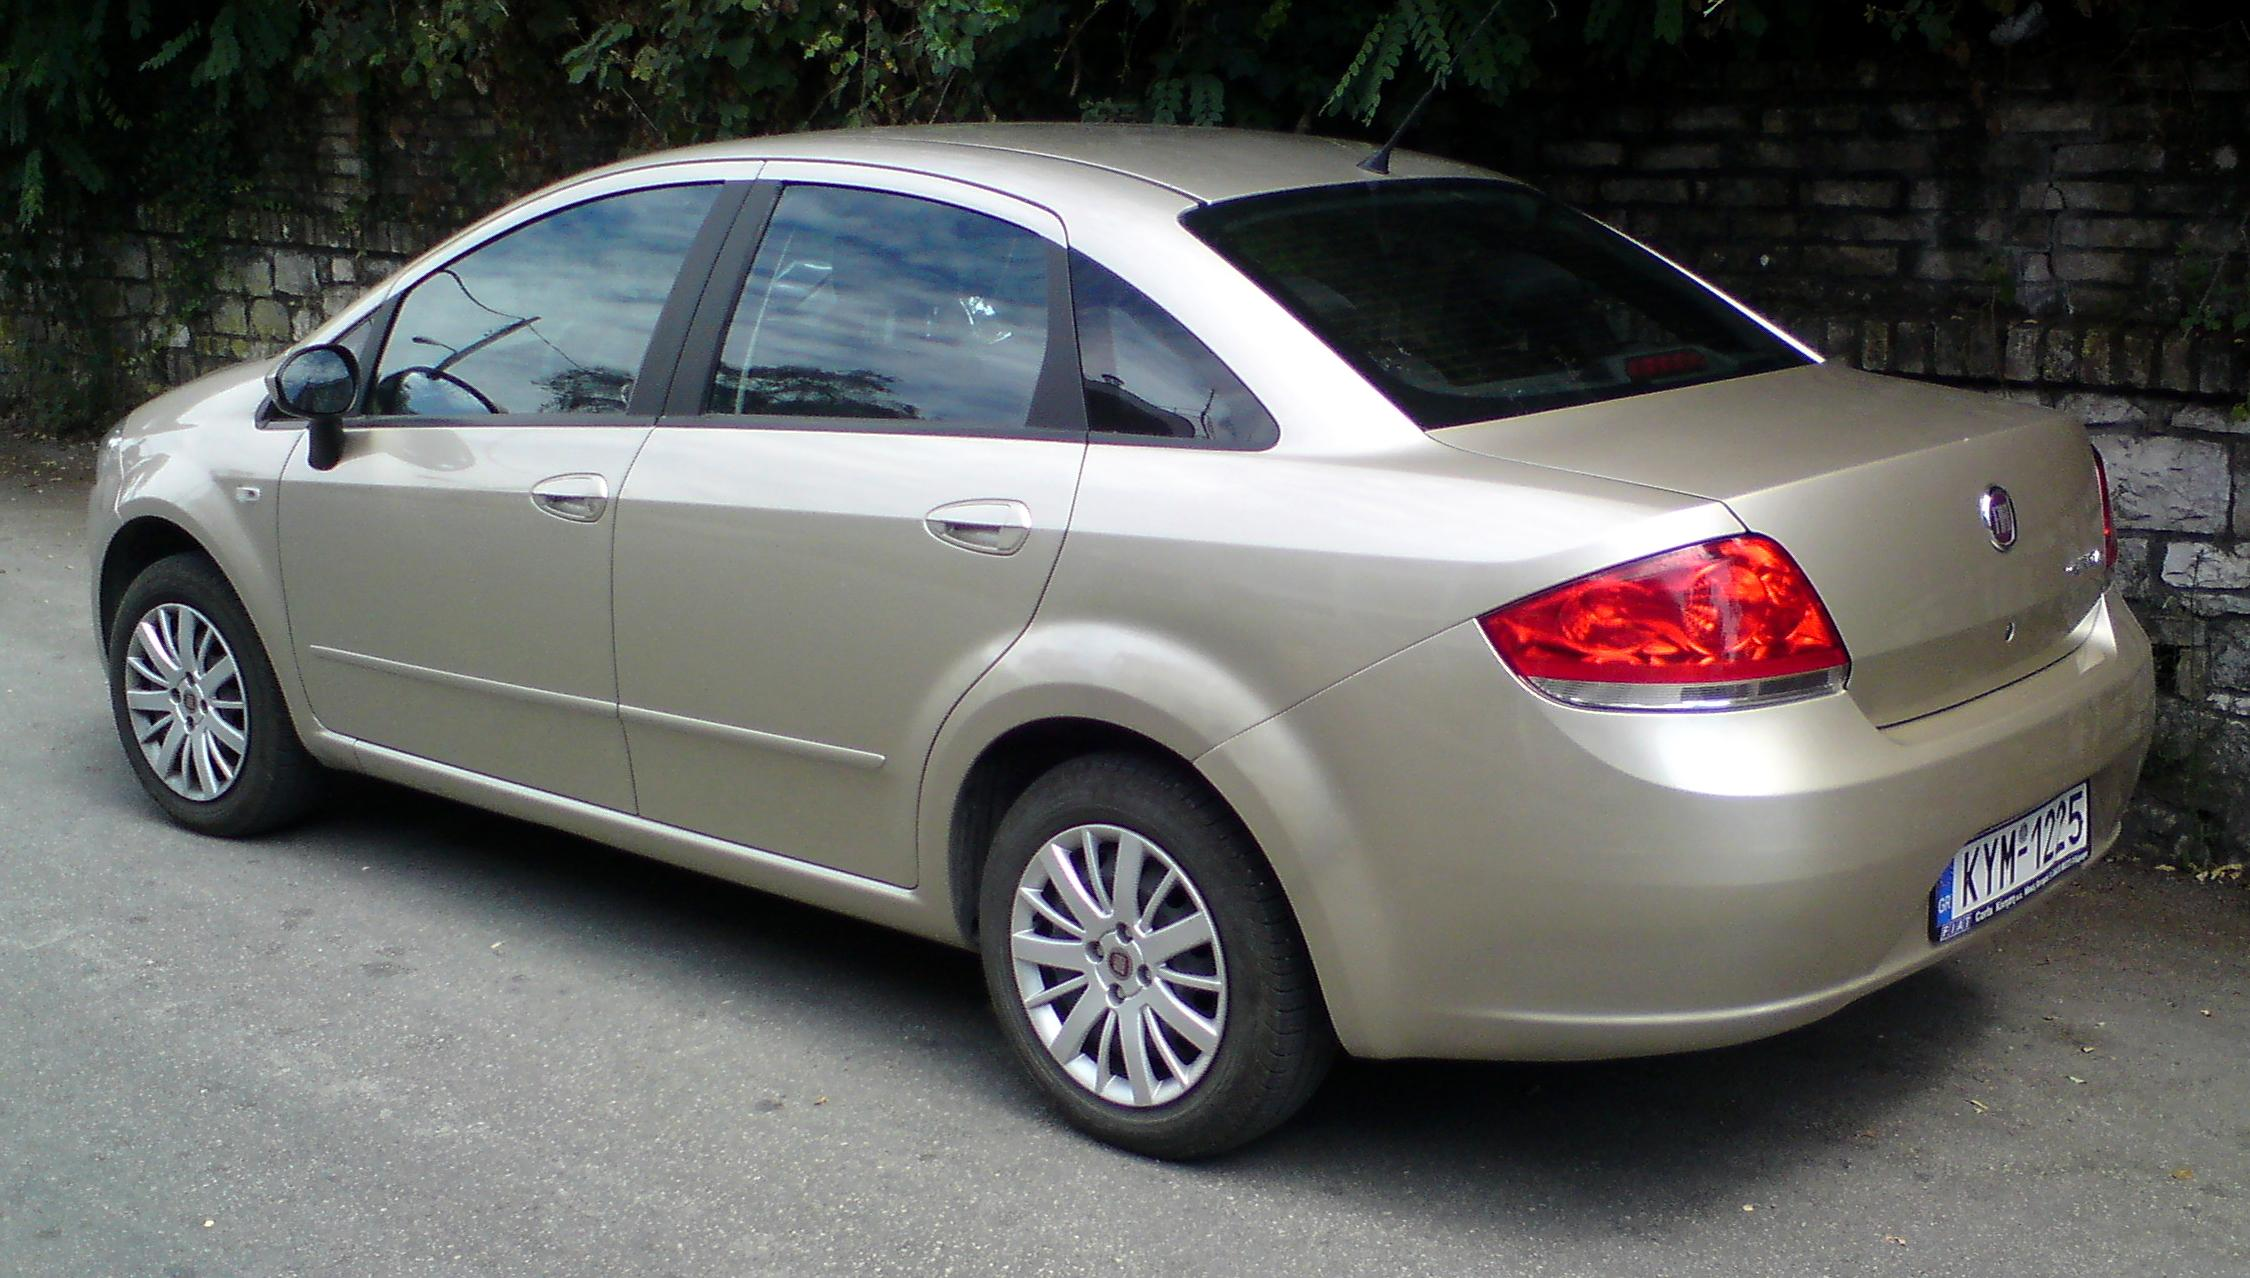 Fiat Linea technical details, history, photos on Better ...